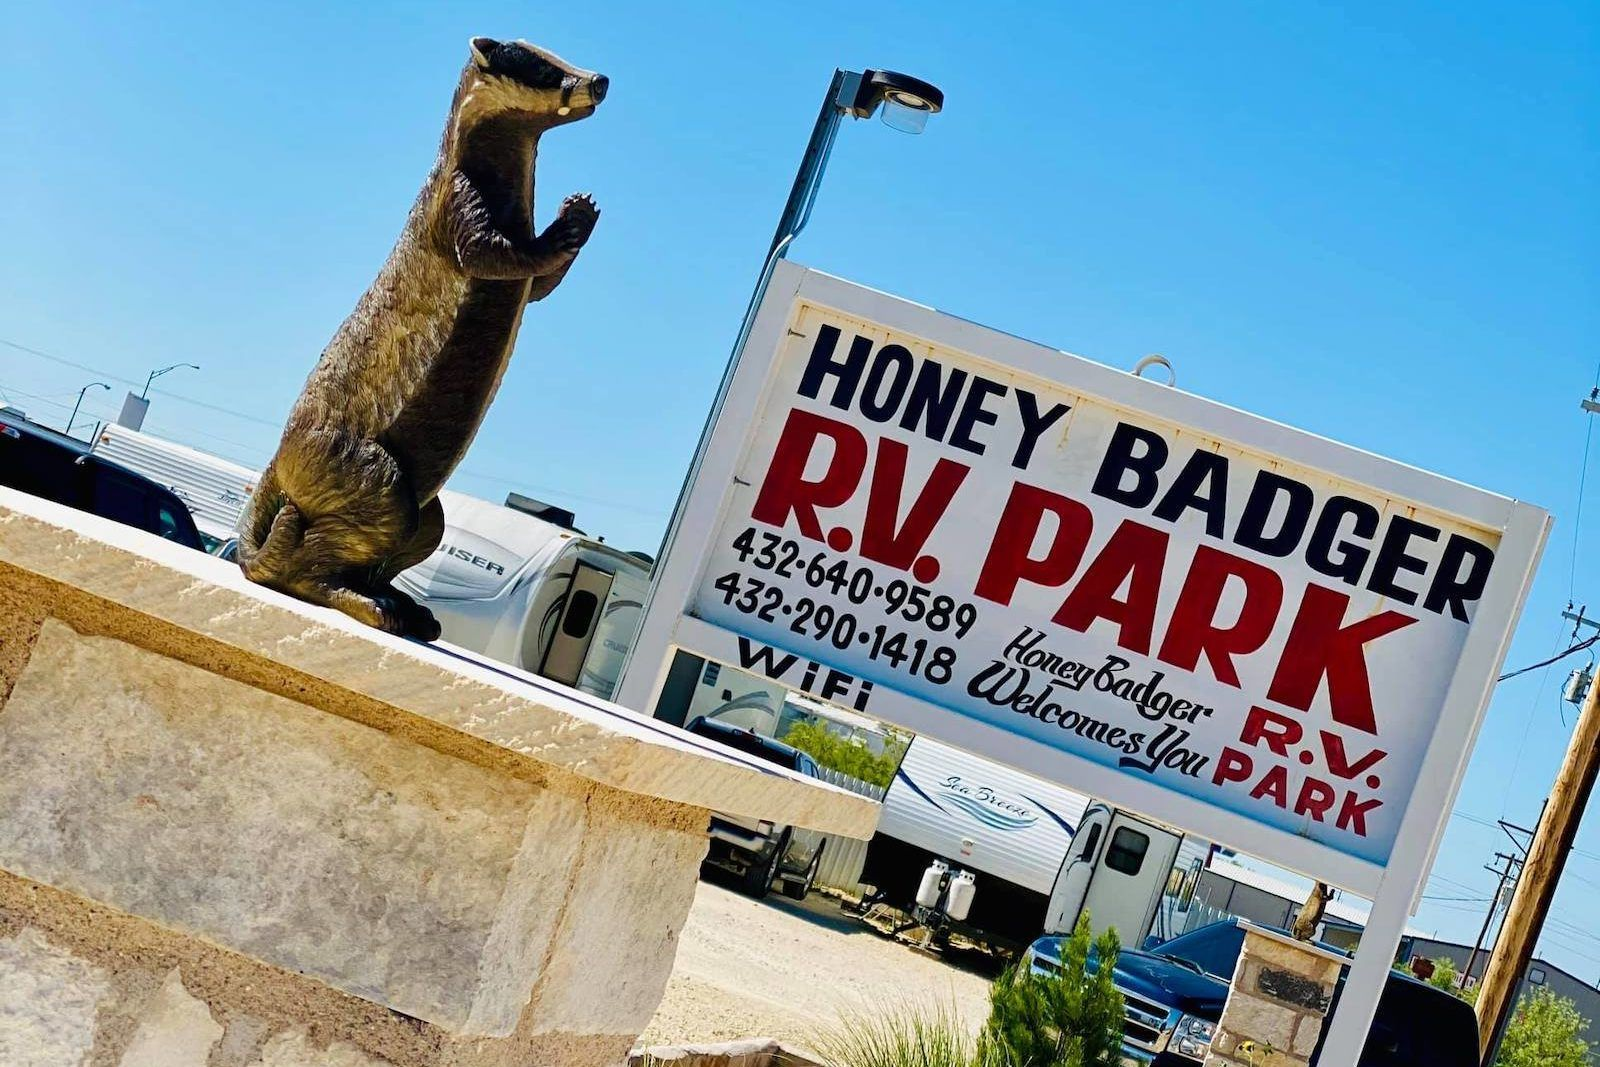 honeybadgerrv